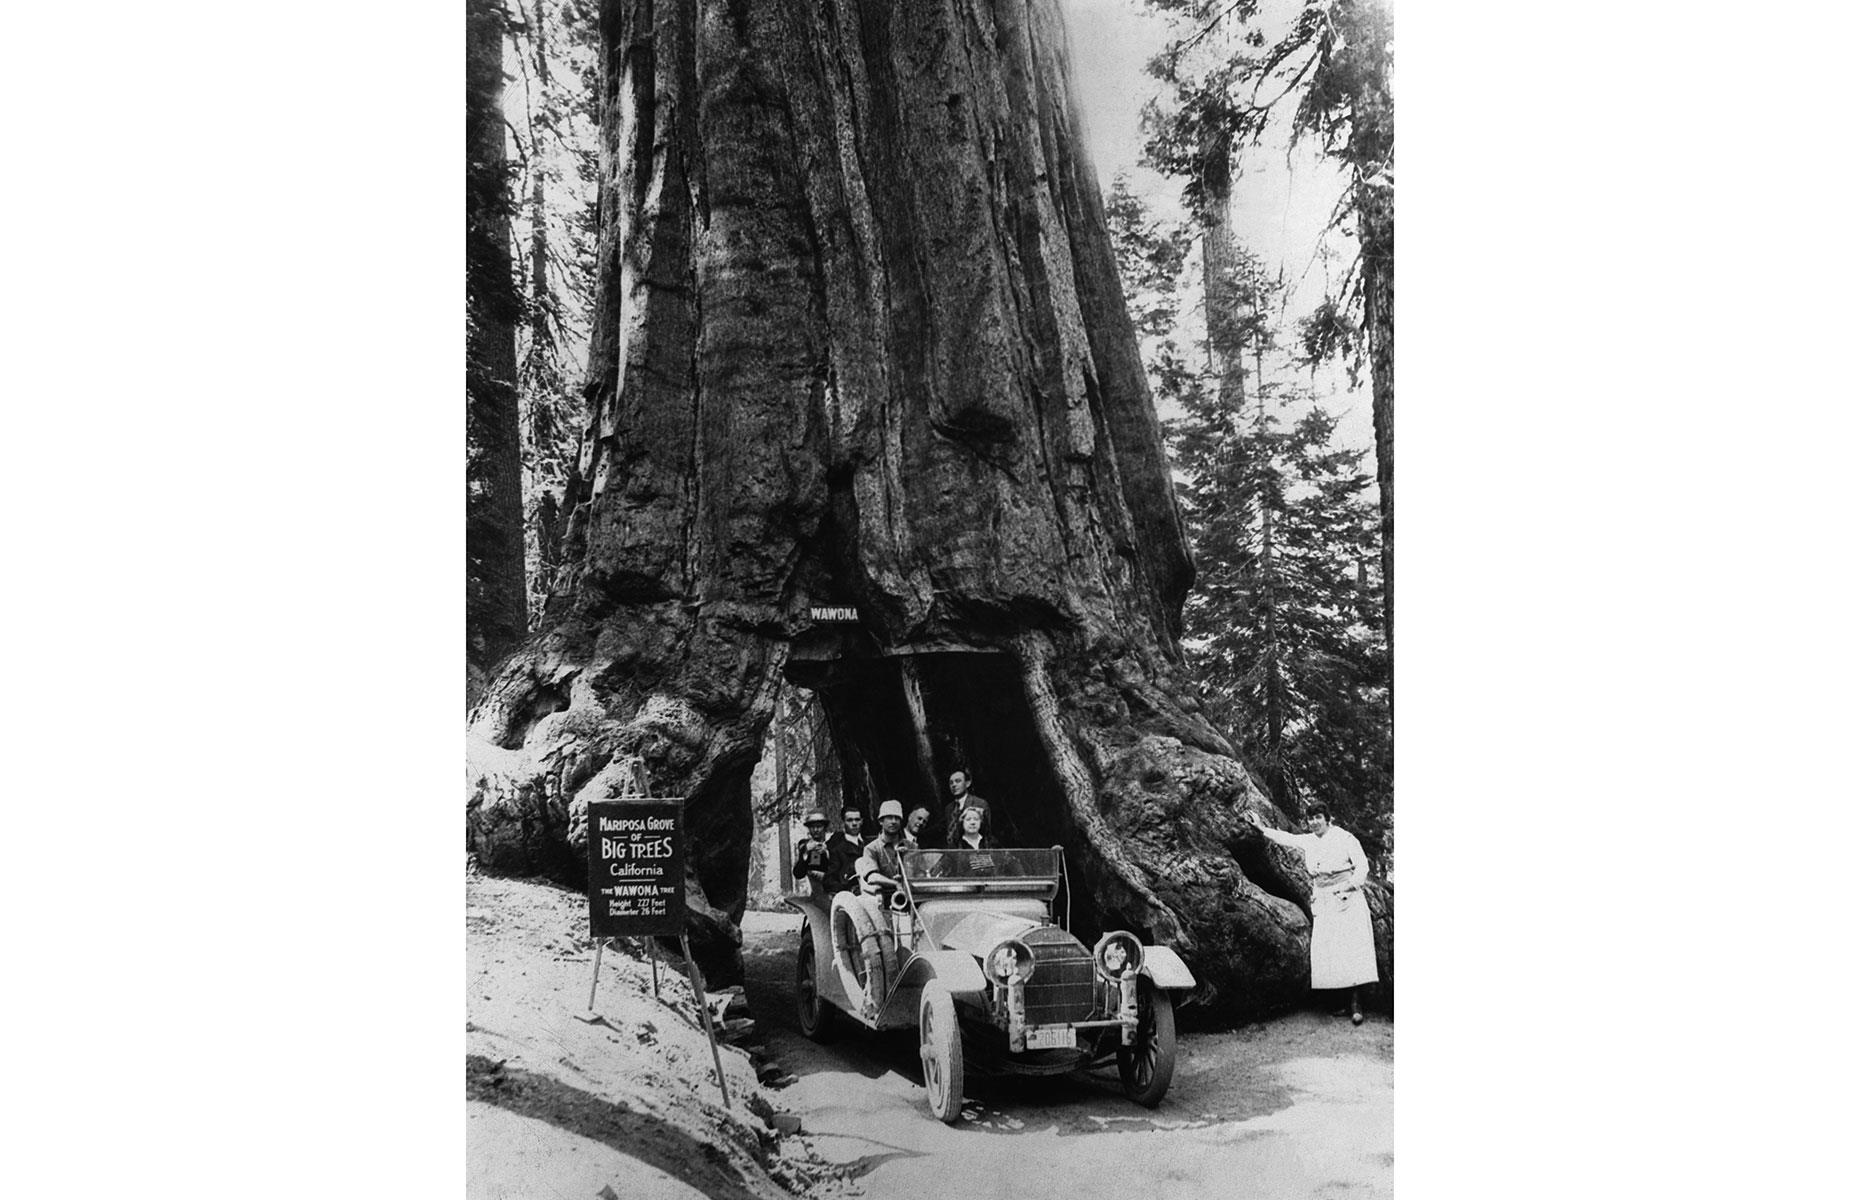 Slide 15 of 47: Beyond its mighty bluffs and glacial valley, Yosemite is known for another thing: its giant sequoia. A top place to see these towering trees is the Mariposa Grove in the park's south. Still home to many monstrous specimens – including the huge Grizzly Giant –the grove once contained the Wawona tree (pictured), a large sequoia known for the tunnel at its base. It fell in the 1960s, but is pictured here in the prime of its life in 1918.